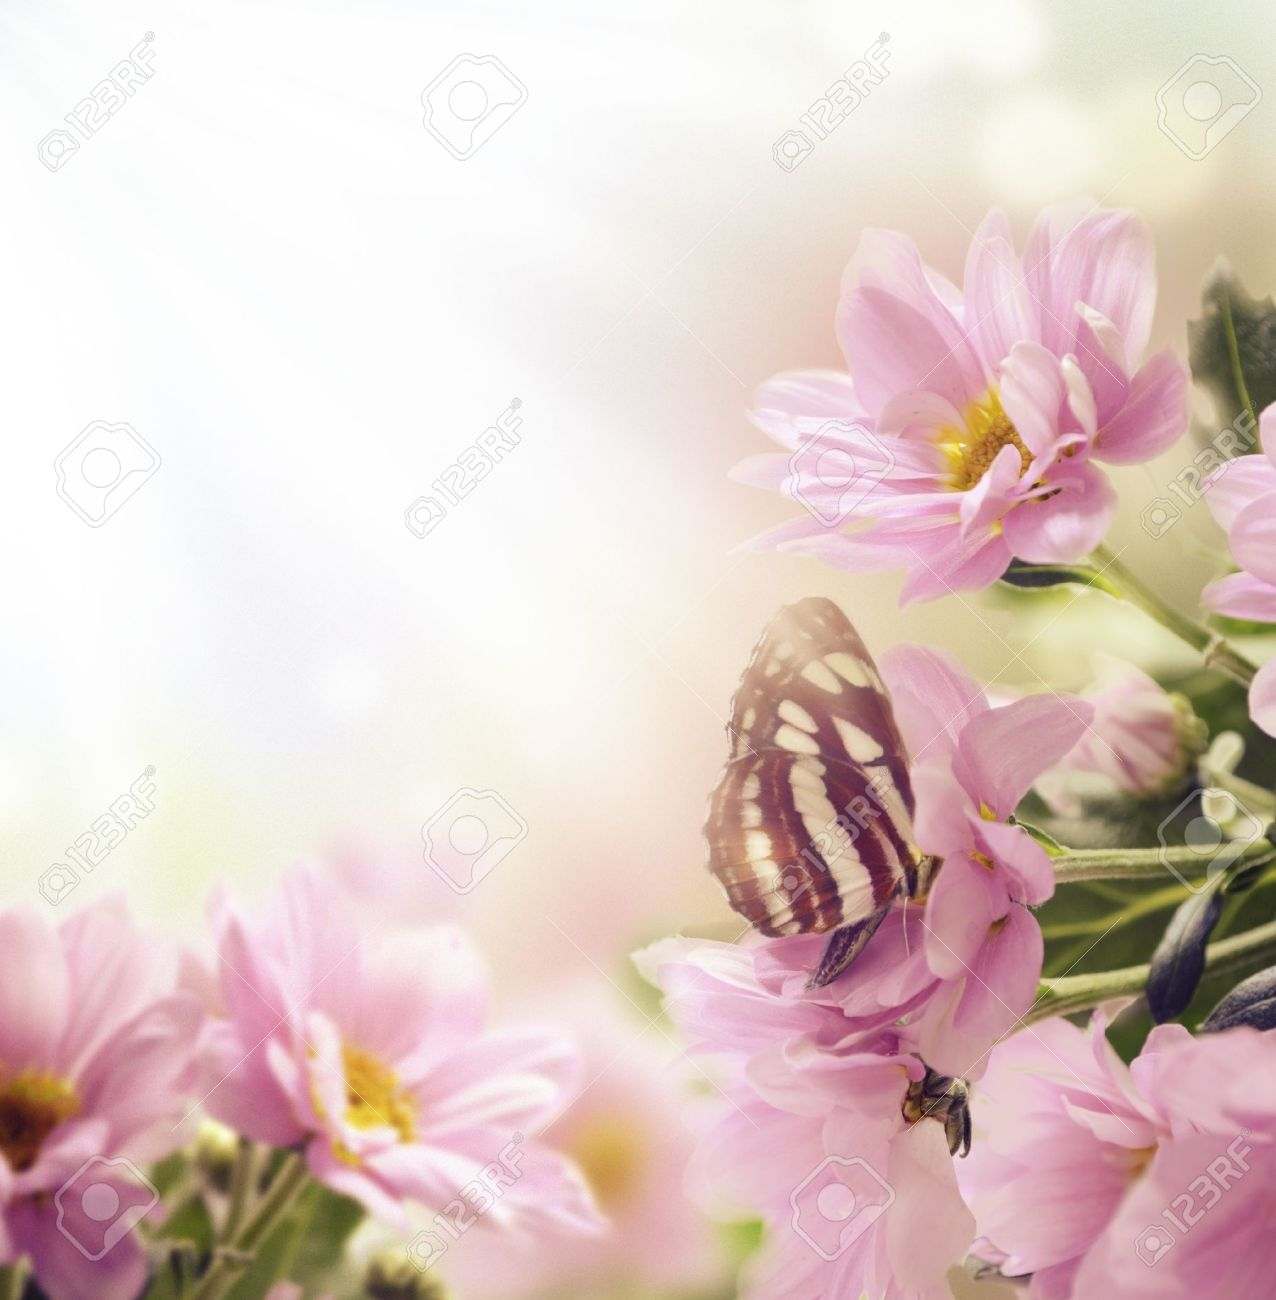 Beautiful pink flowers and butterfly in the garden Stock Photo - 17981756